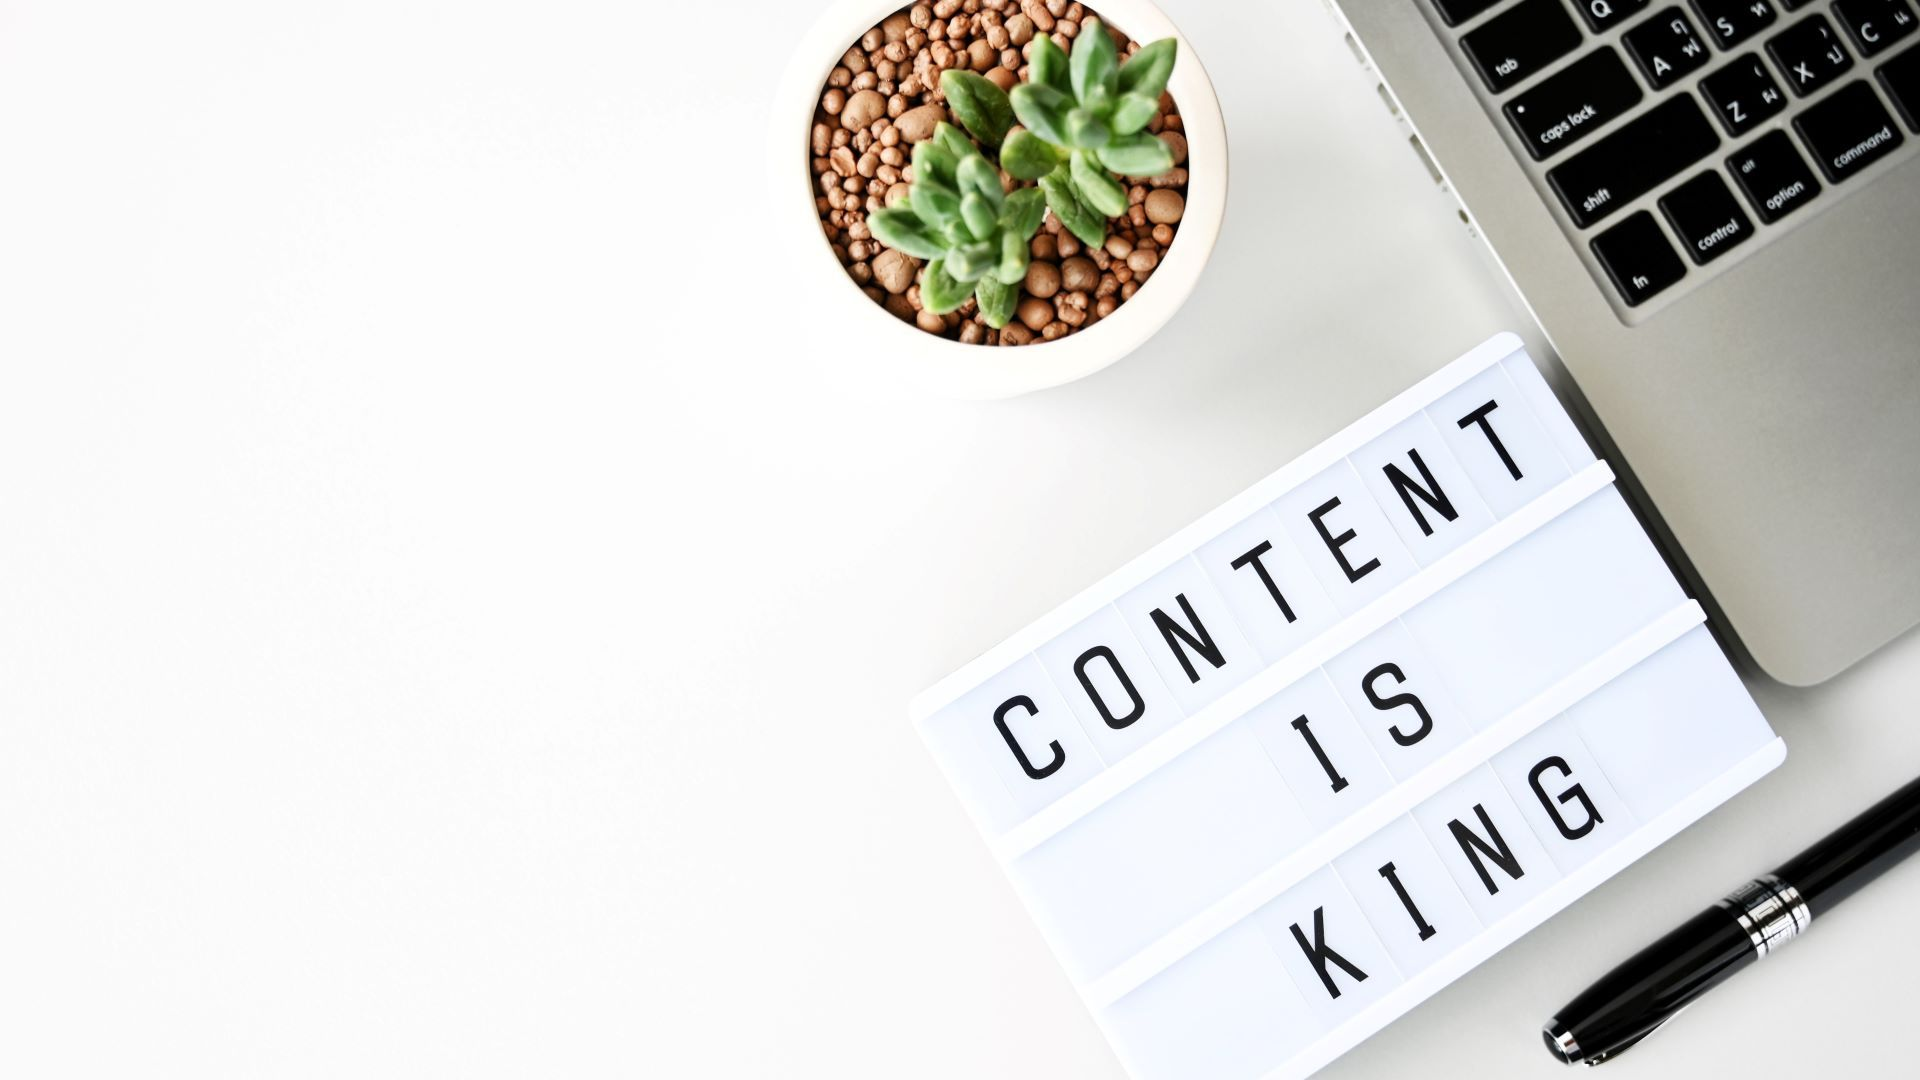 Content marketing workstation with laptop and sign saying 'content is king'